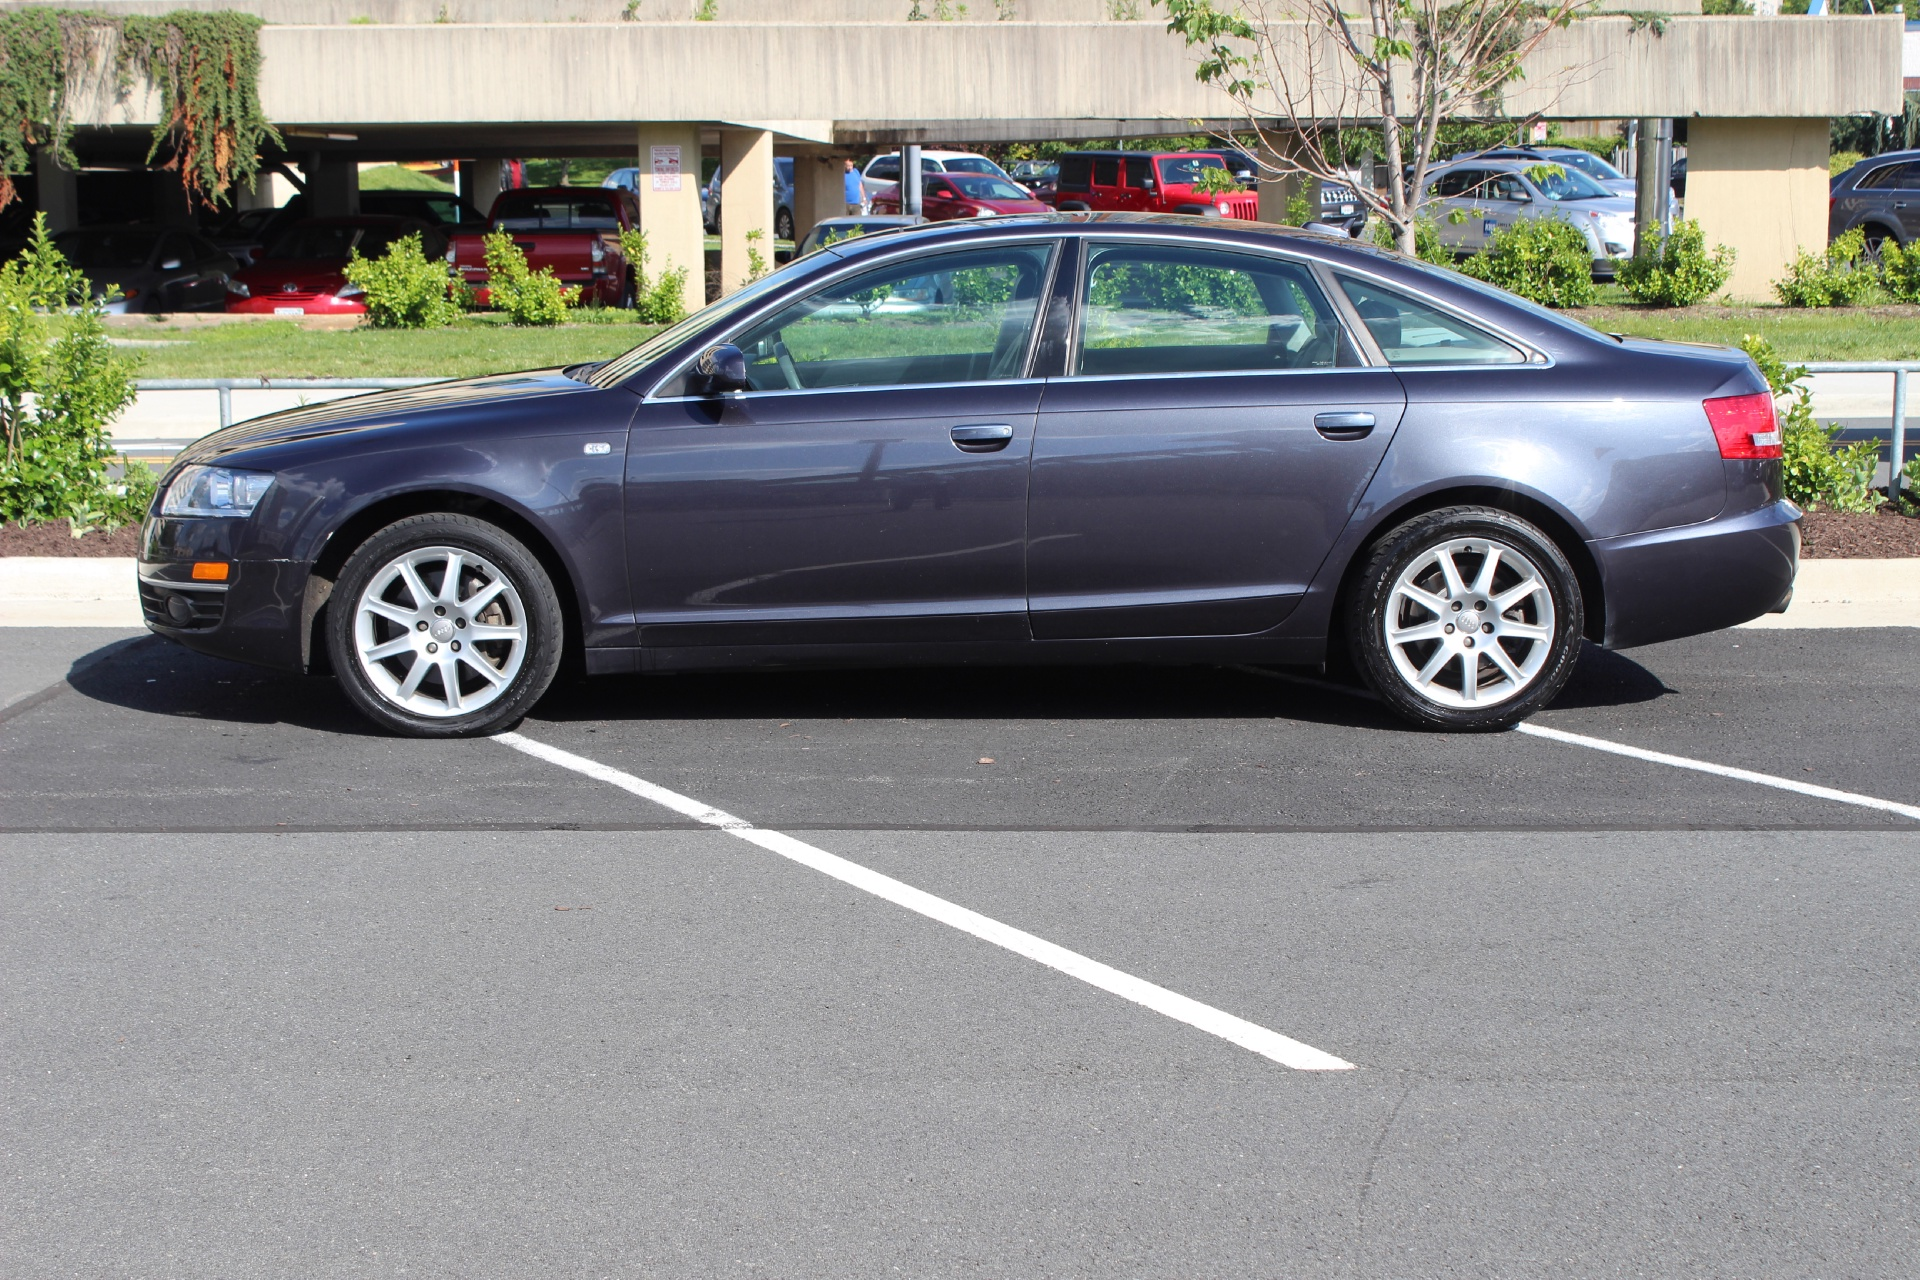 audi sedan city dealers va automotive in virginia select beach revo premium